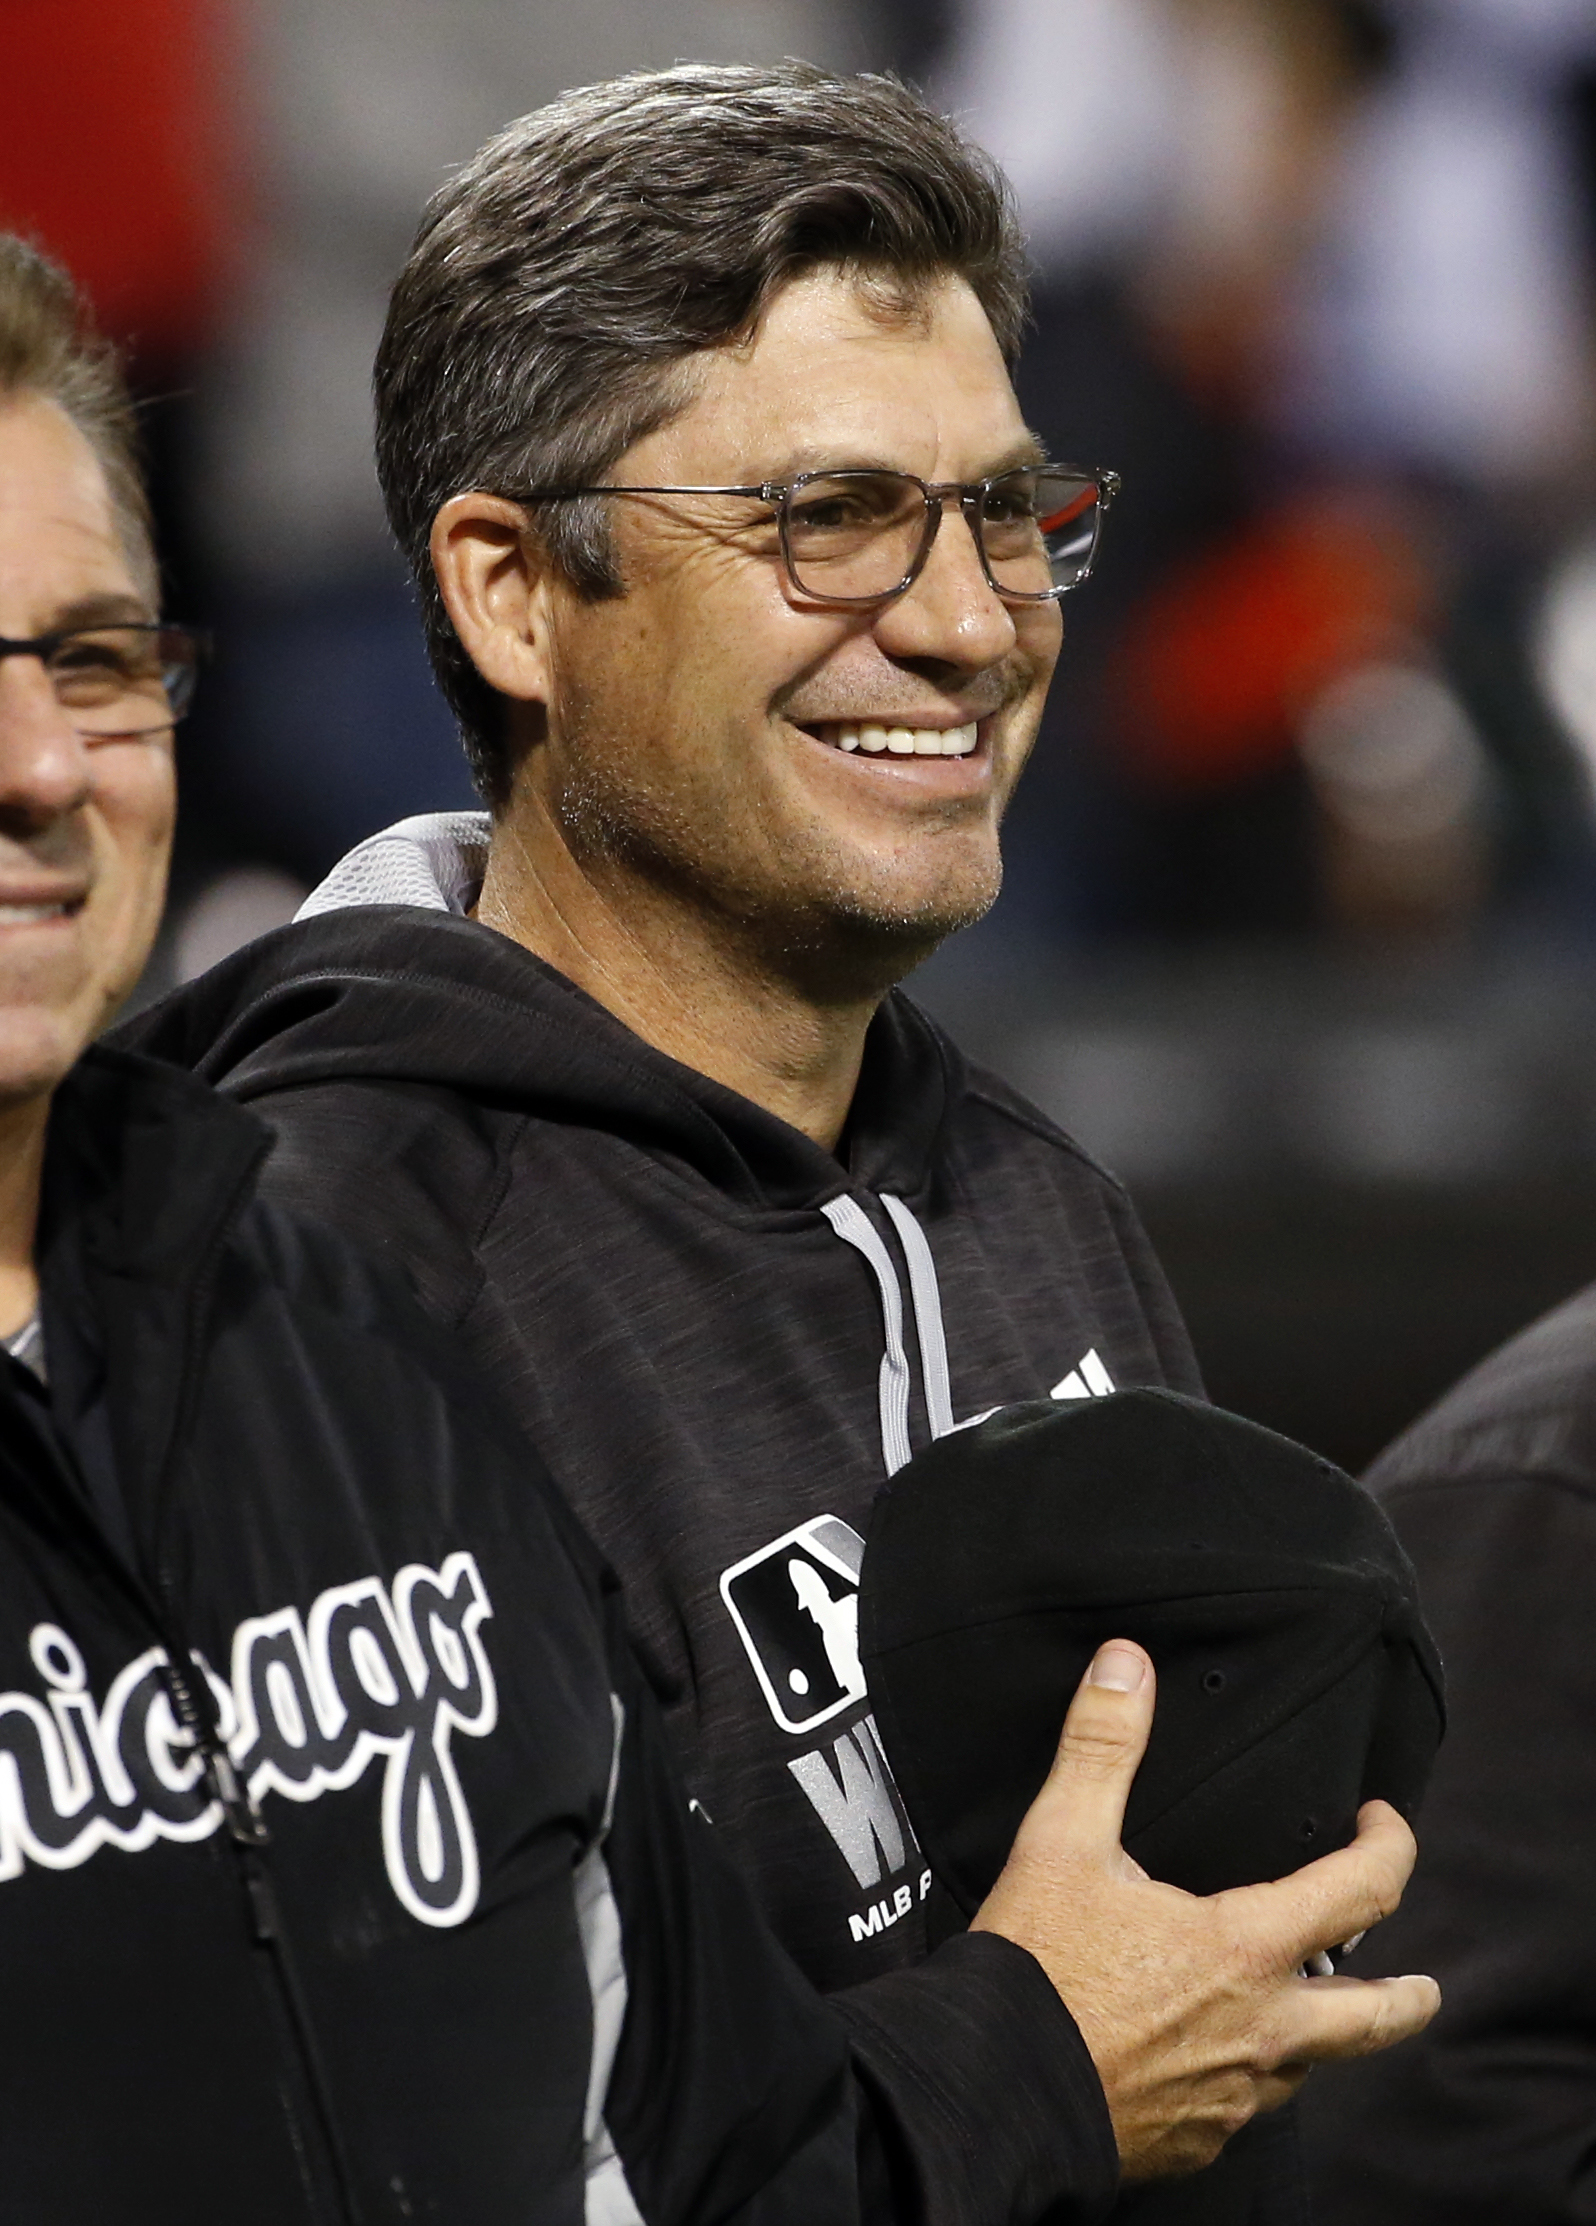 Chicago White Sox manager Robin Ventura smiles during the national anthem before a baseball game against the Tampa Bay Rays, Thursday, Sept. 29, 2016, in Chicago. (AP Photo/Nam Y. Huh)